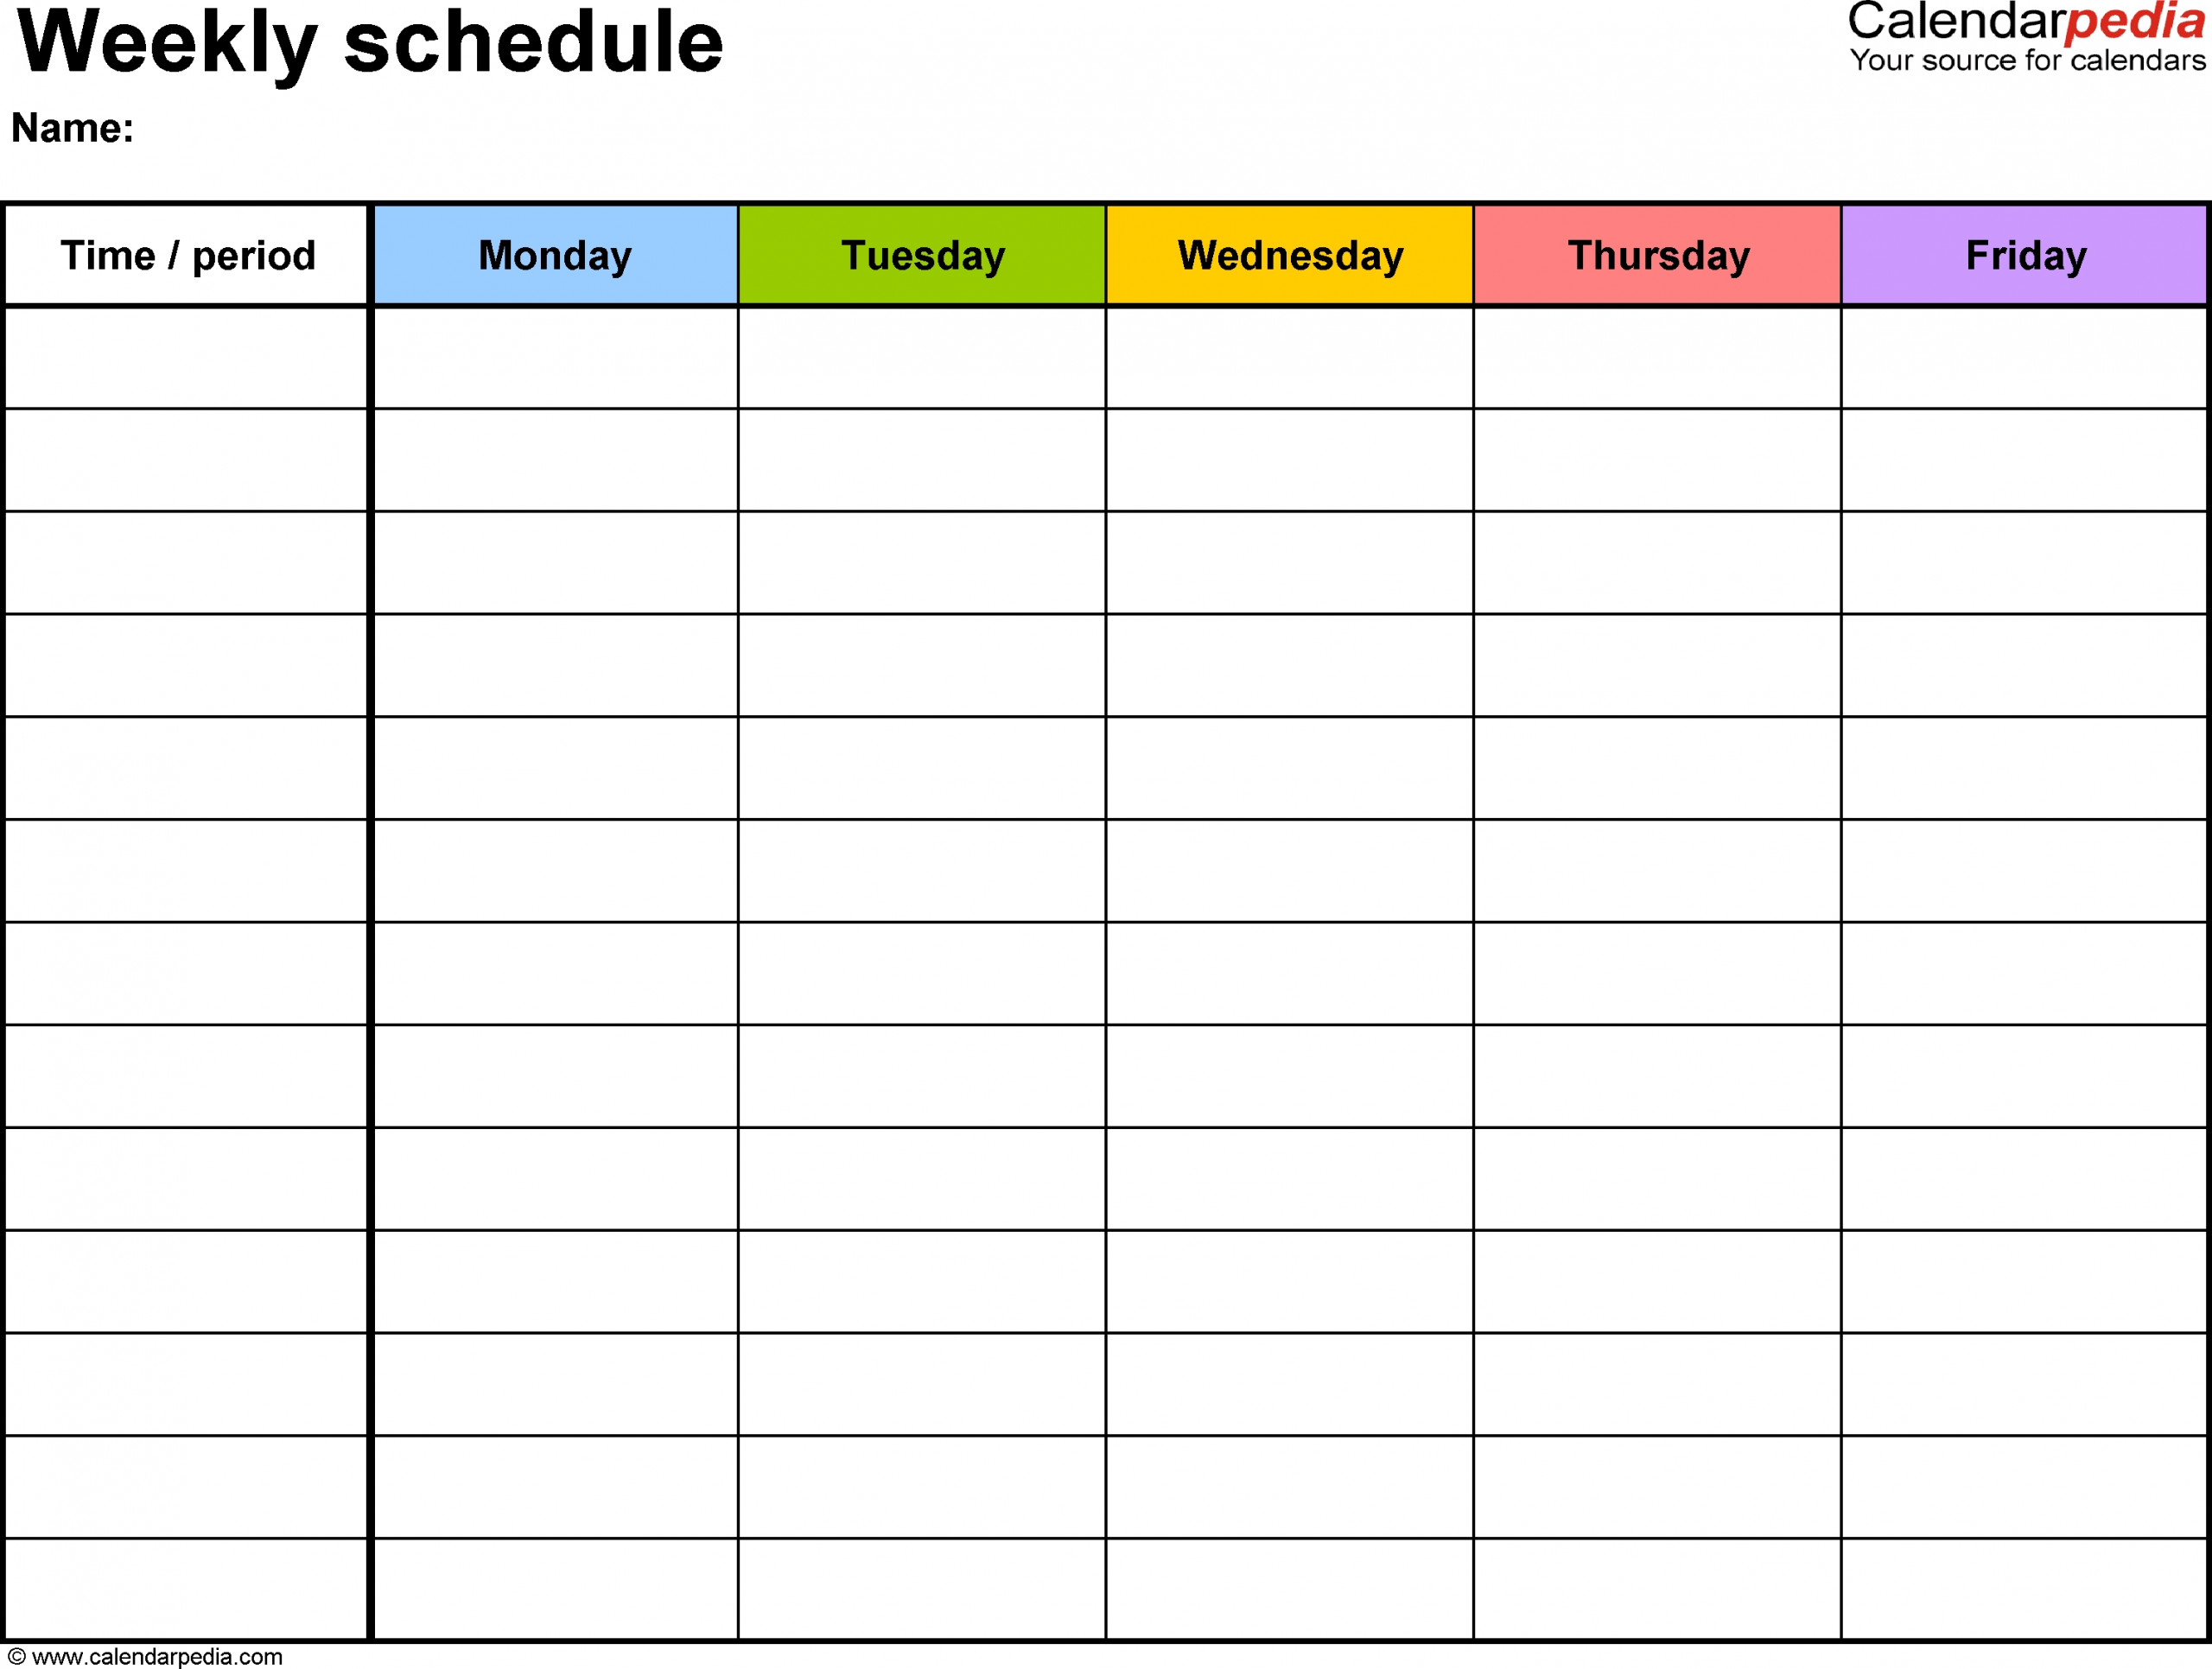 Catch Weekly Timetable Mon To Fri